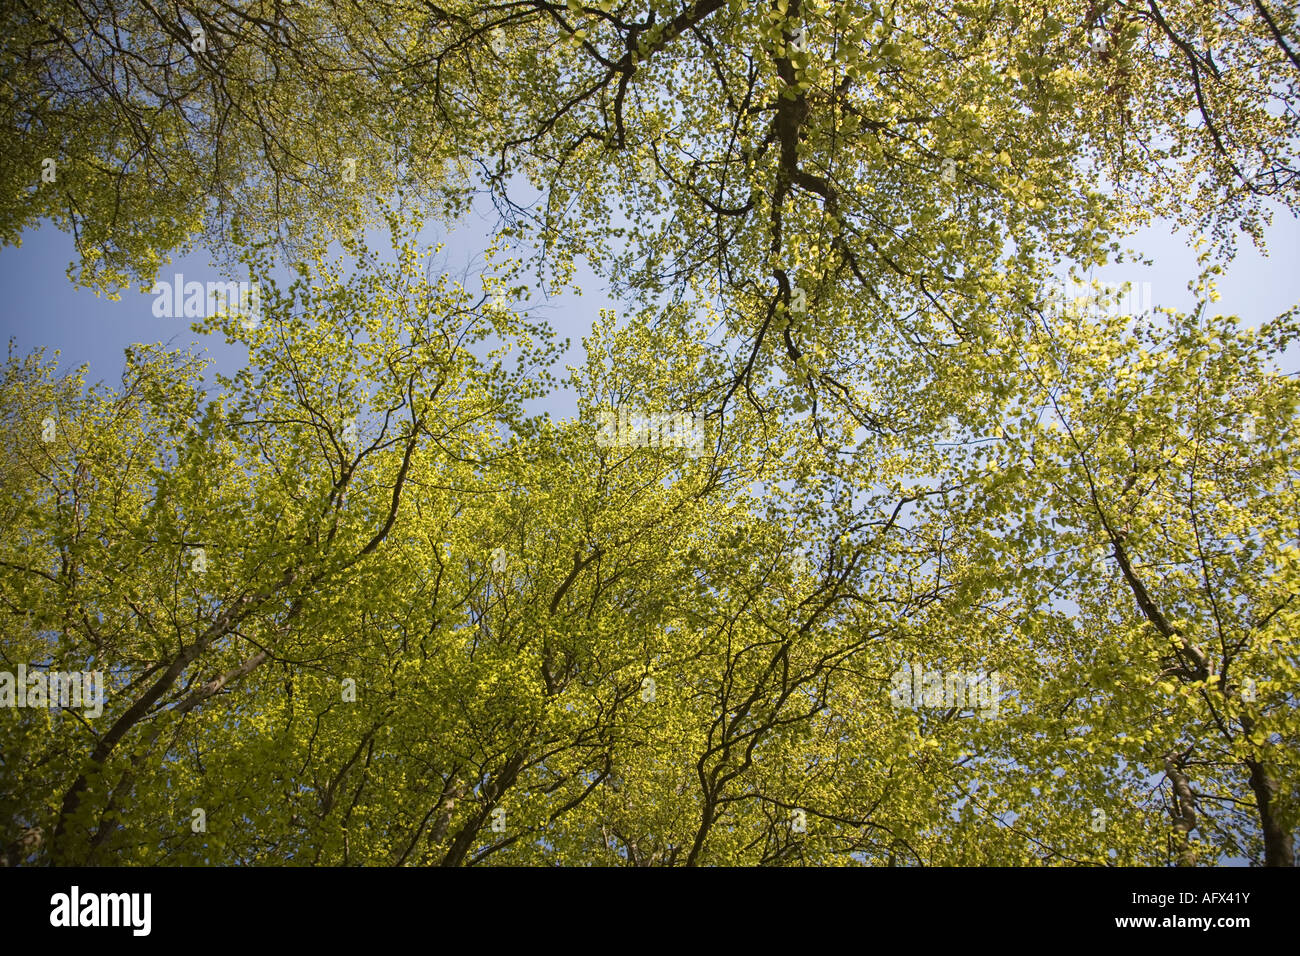 Sweden Sk ne Scania beech forest in spring May 2006 Stock Photo